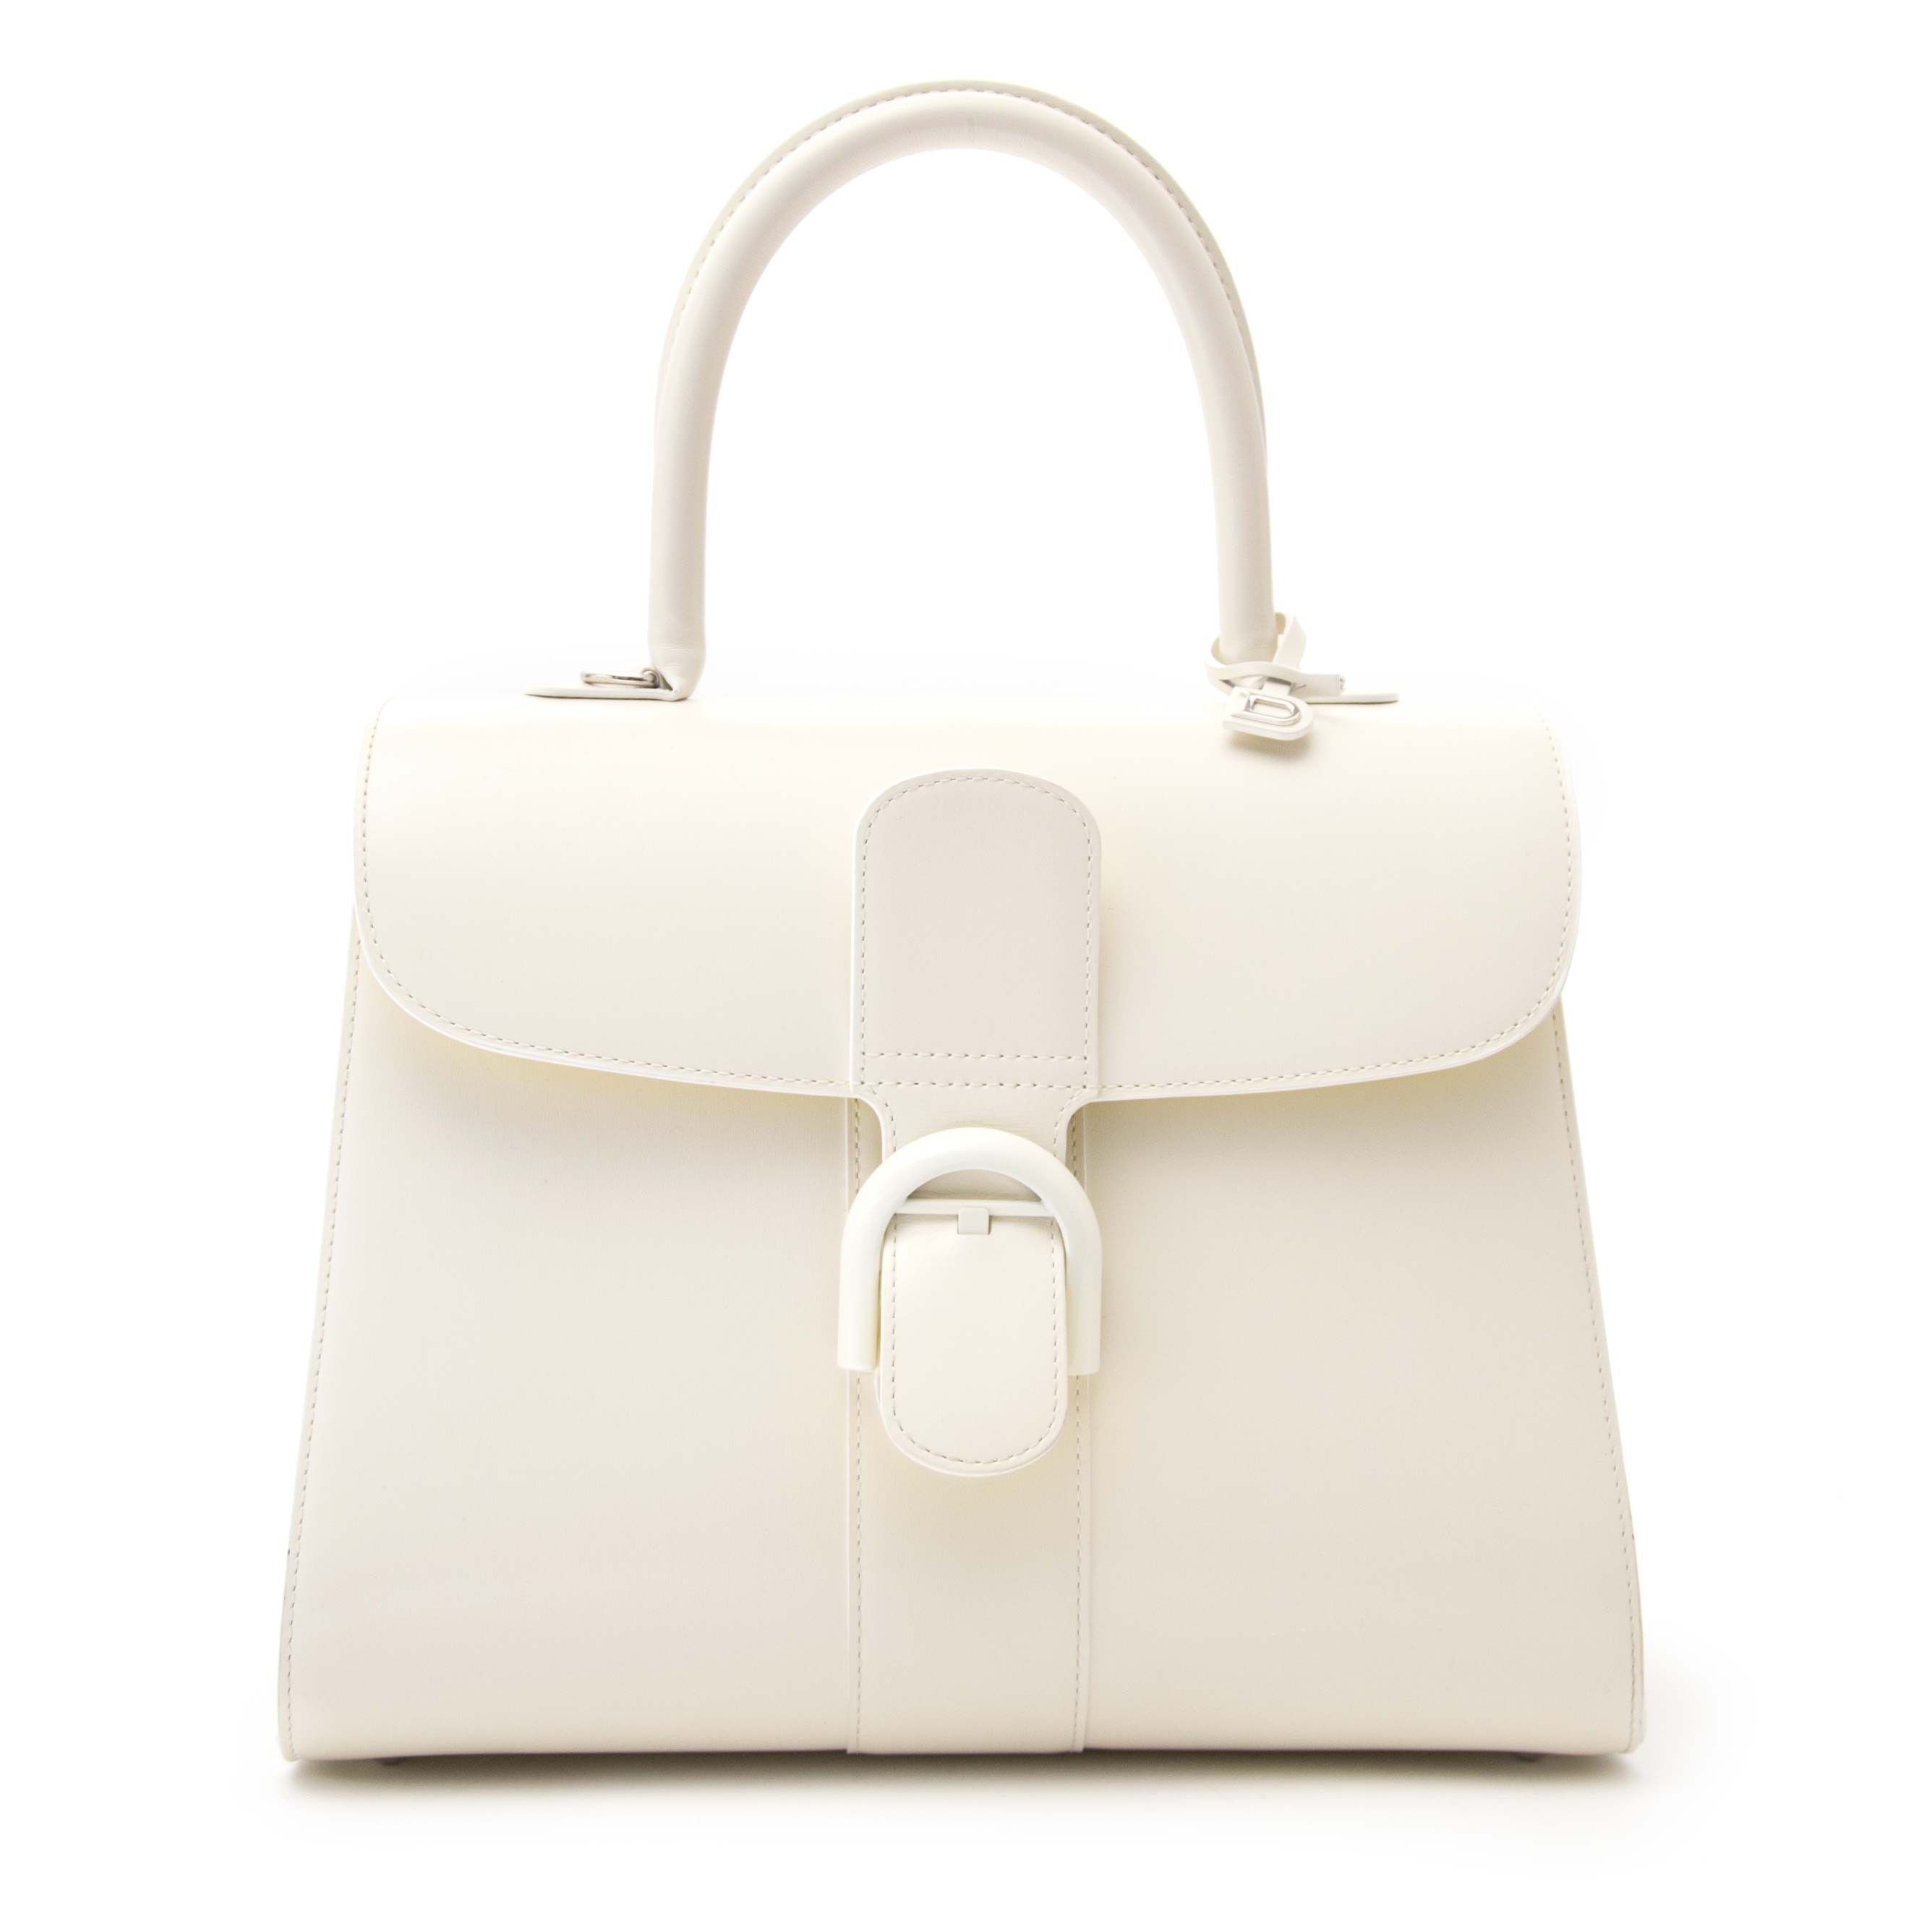 e3b75d516e Exclusive and very rare Delvaux Brillant Magic MM Ivory & Rainbow only  available at Labellov